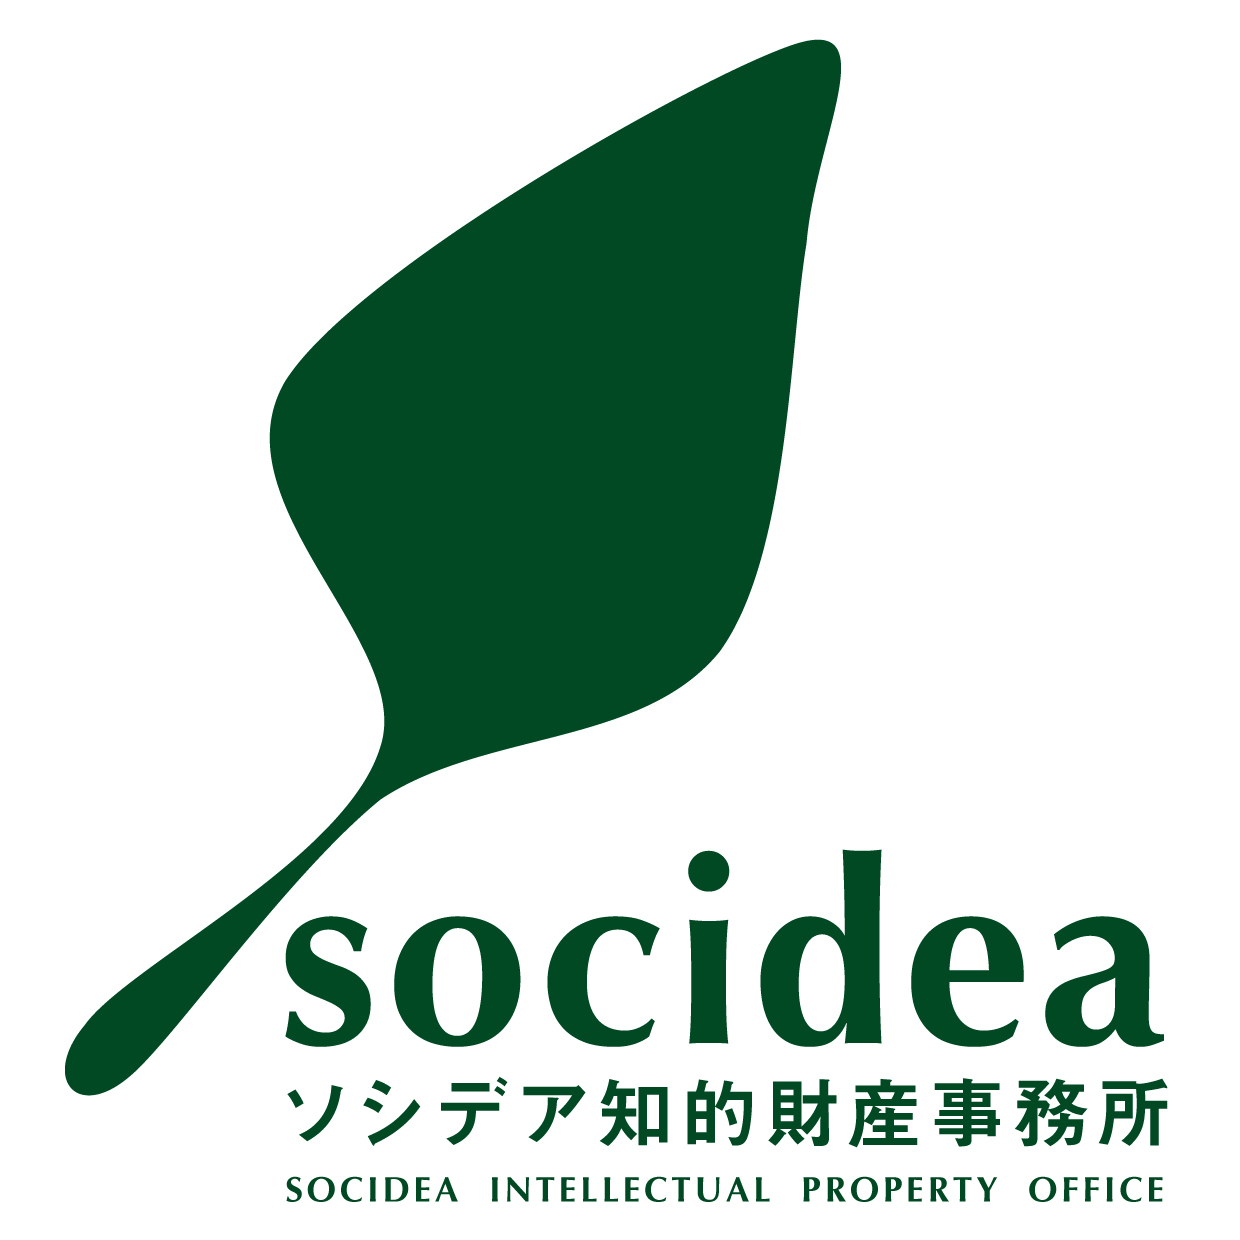 SOCIDEA = SOCIAL + IDEA